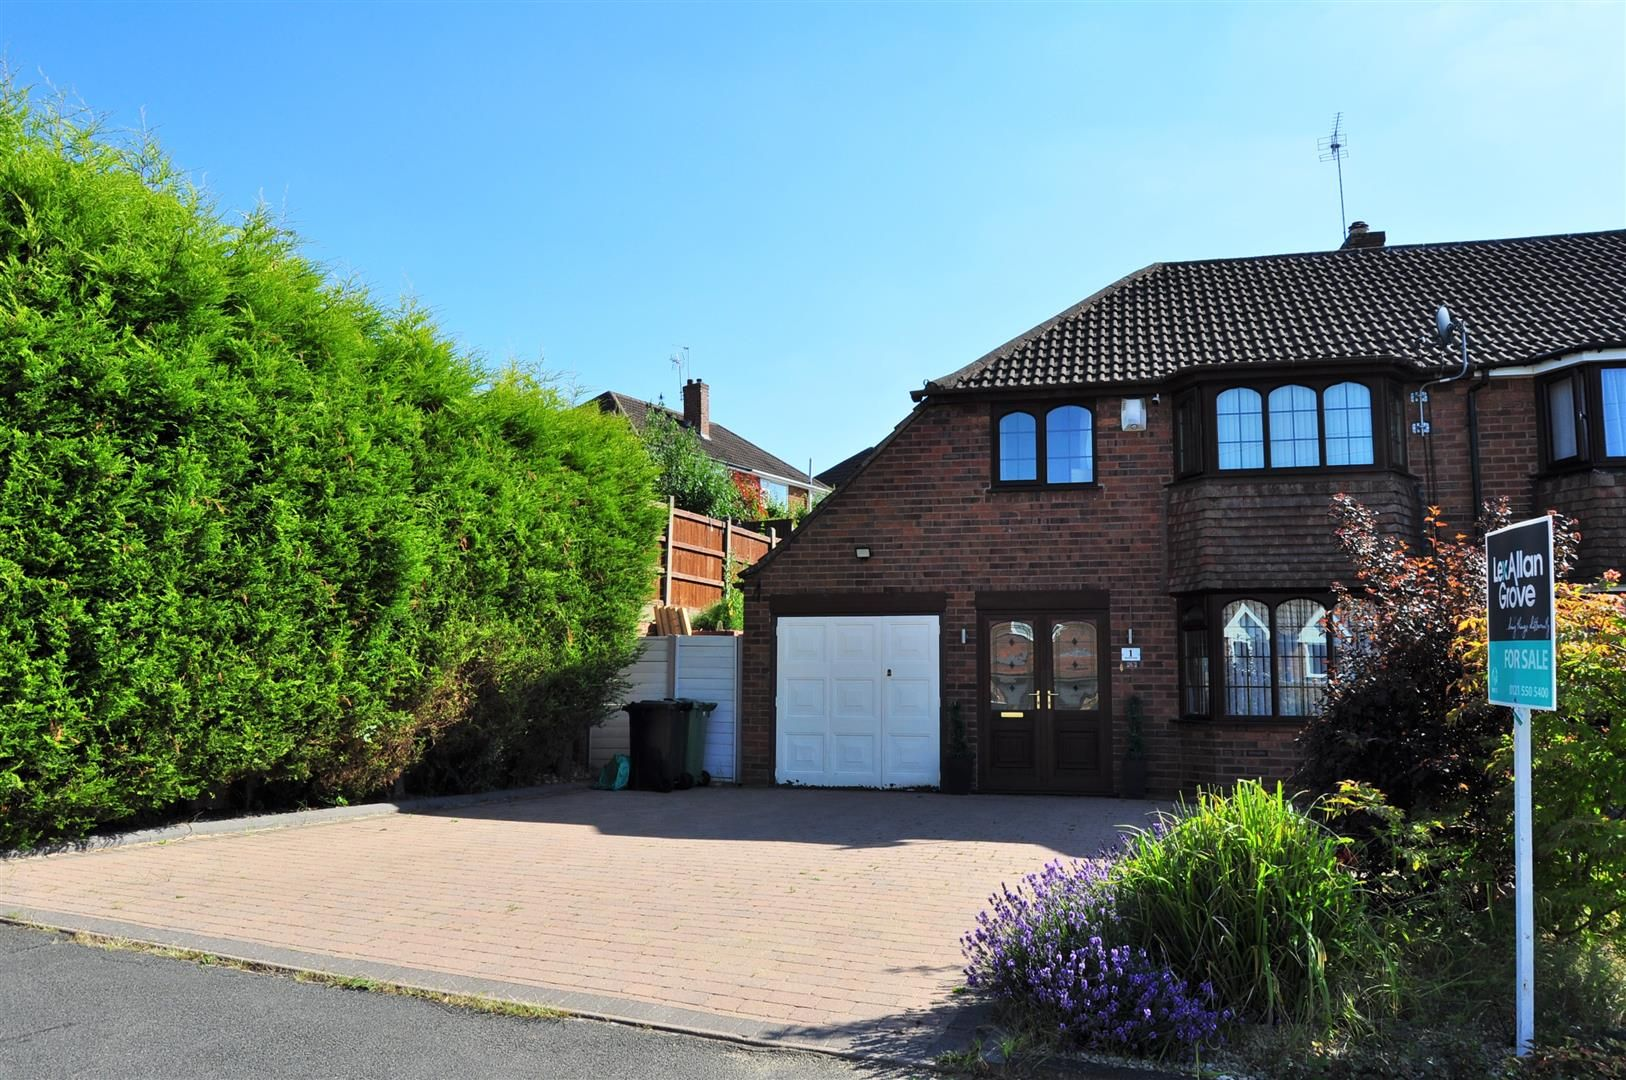 3 bed semi-detached for sale in Hasbury, B63